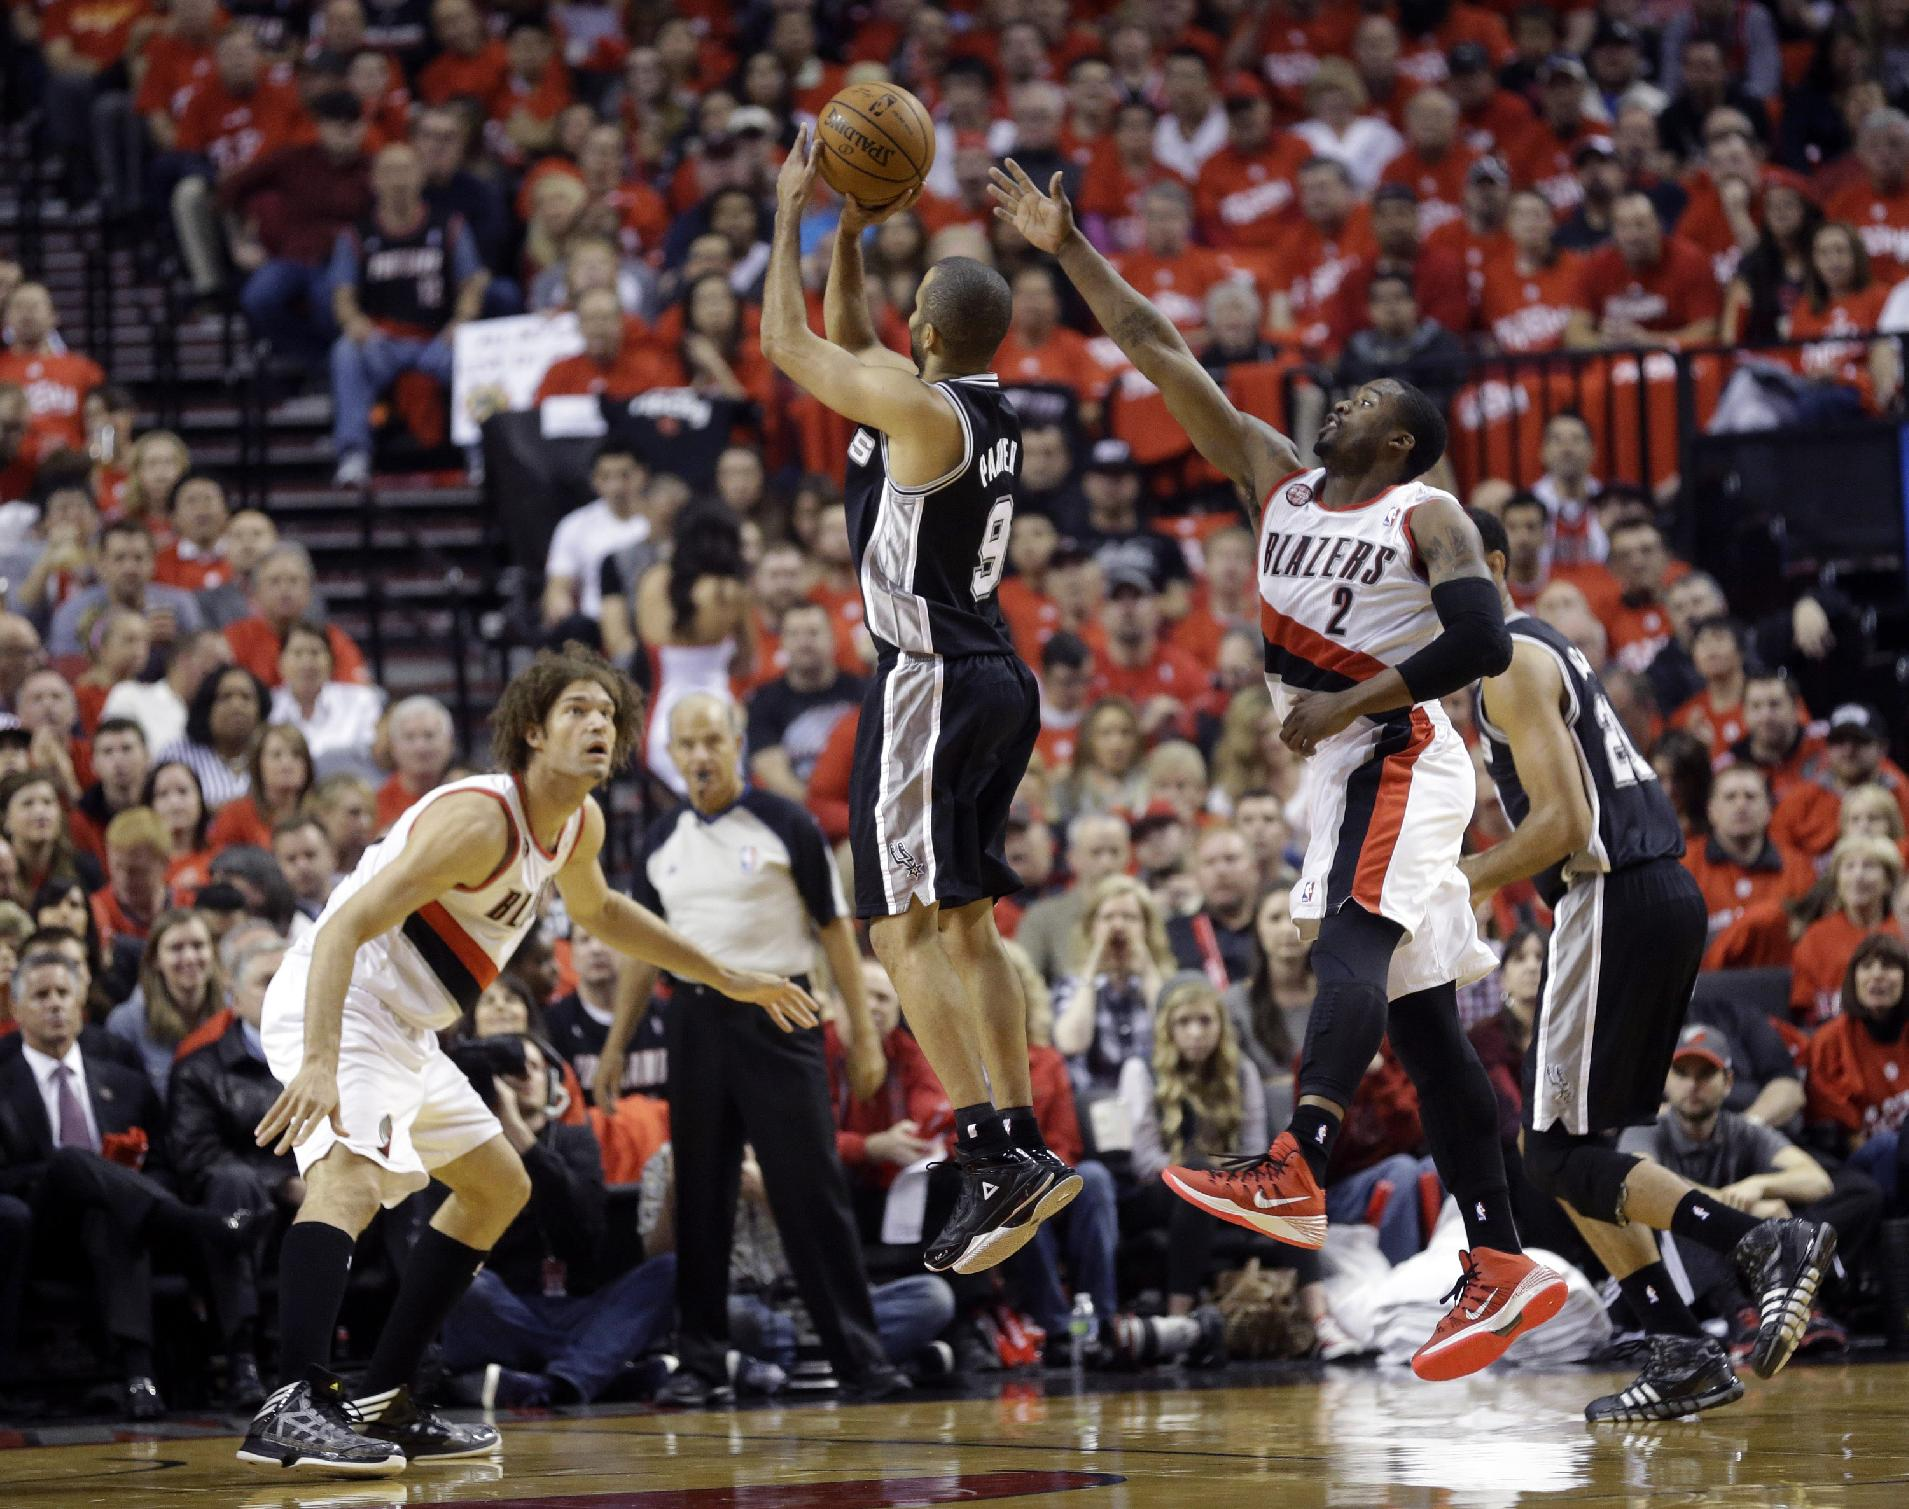 San Antonio Spurs' Tony Parker (9) shoots as Portland Trail Blazers' Robin Lopez (42) and Wesley Matthews (2) defend in the first quarter during Game 3 of a Western Conference semifinal NBA basketball playoff series Saturday, May 10, 2014, in Portland, Ore